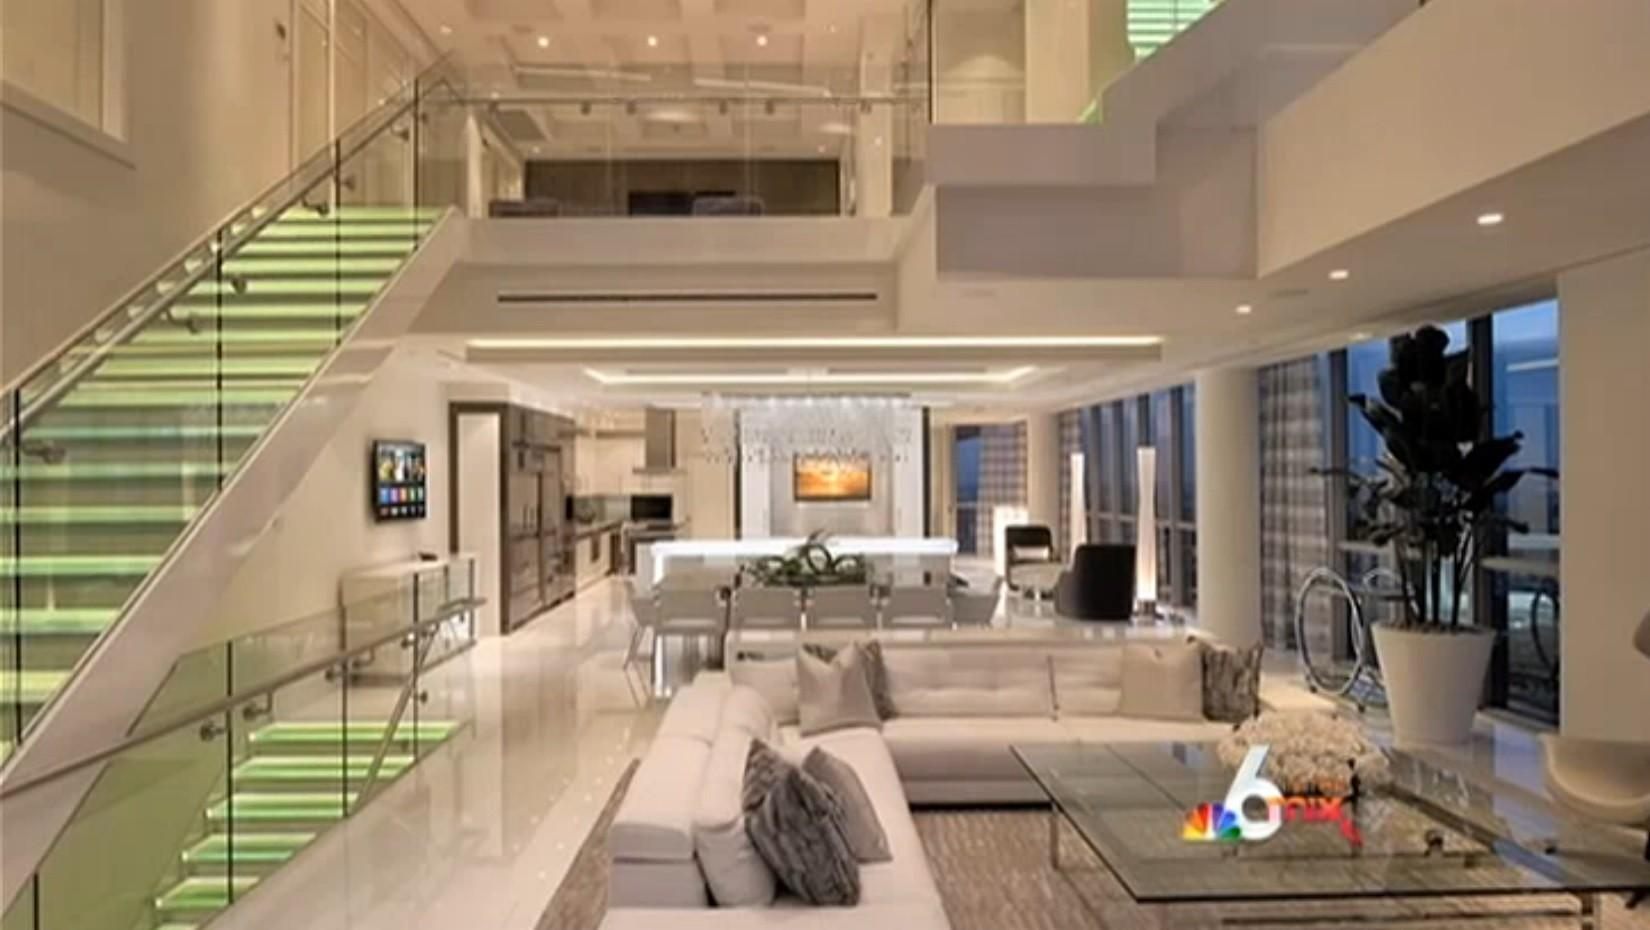 Whyreboot Network Powers Incredible Miami Penthouse